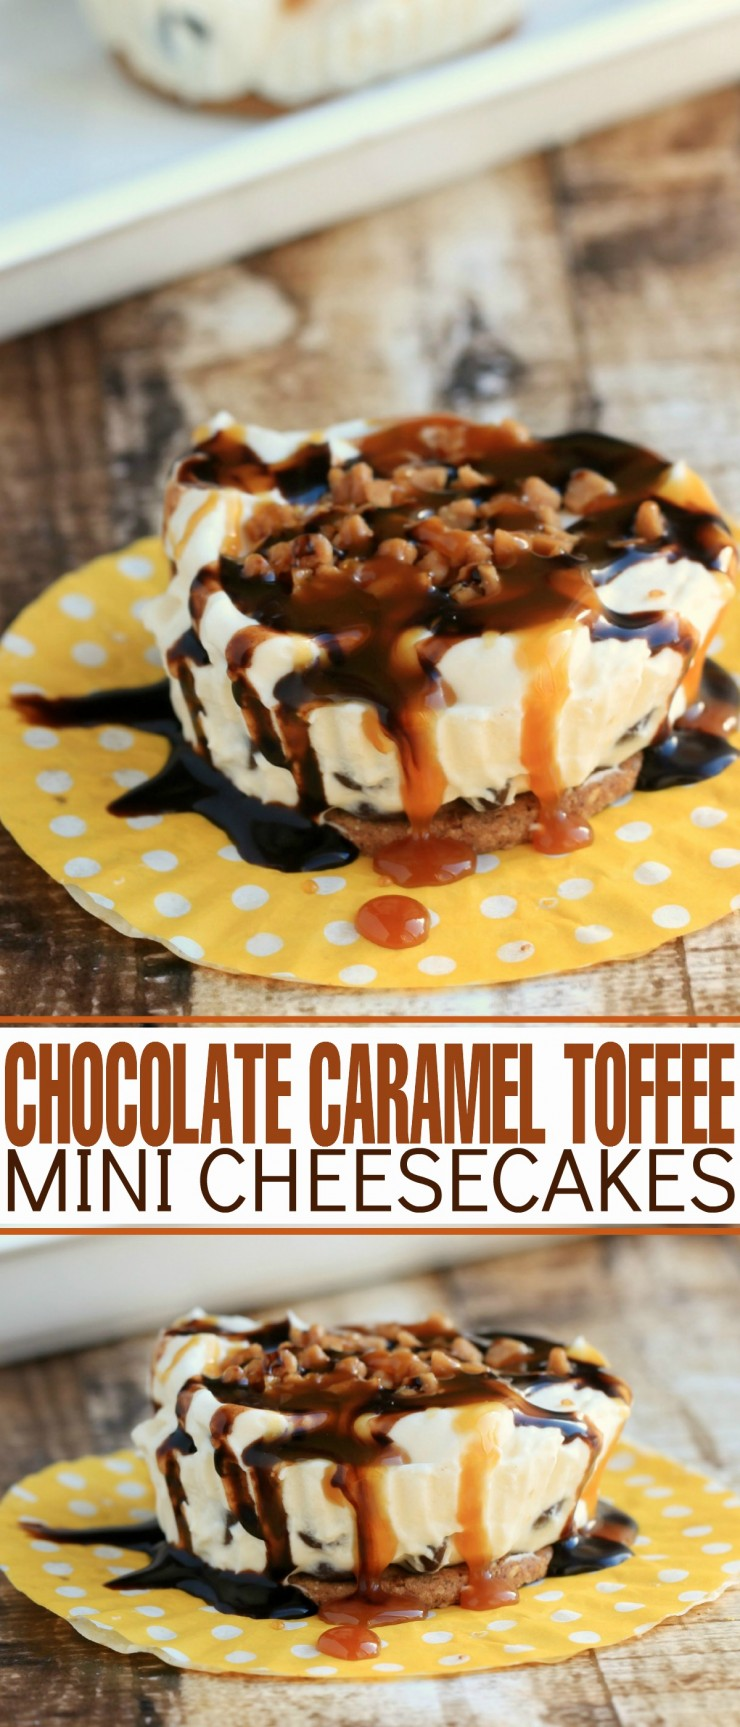 These Toffee Caramel Chocolate Mini Cheesecakes are an incredibly easy dessert to whip up any time!